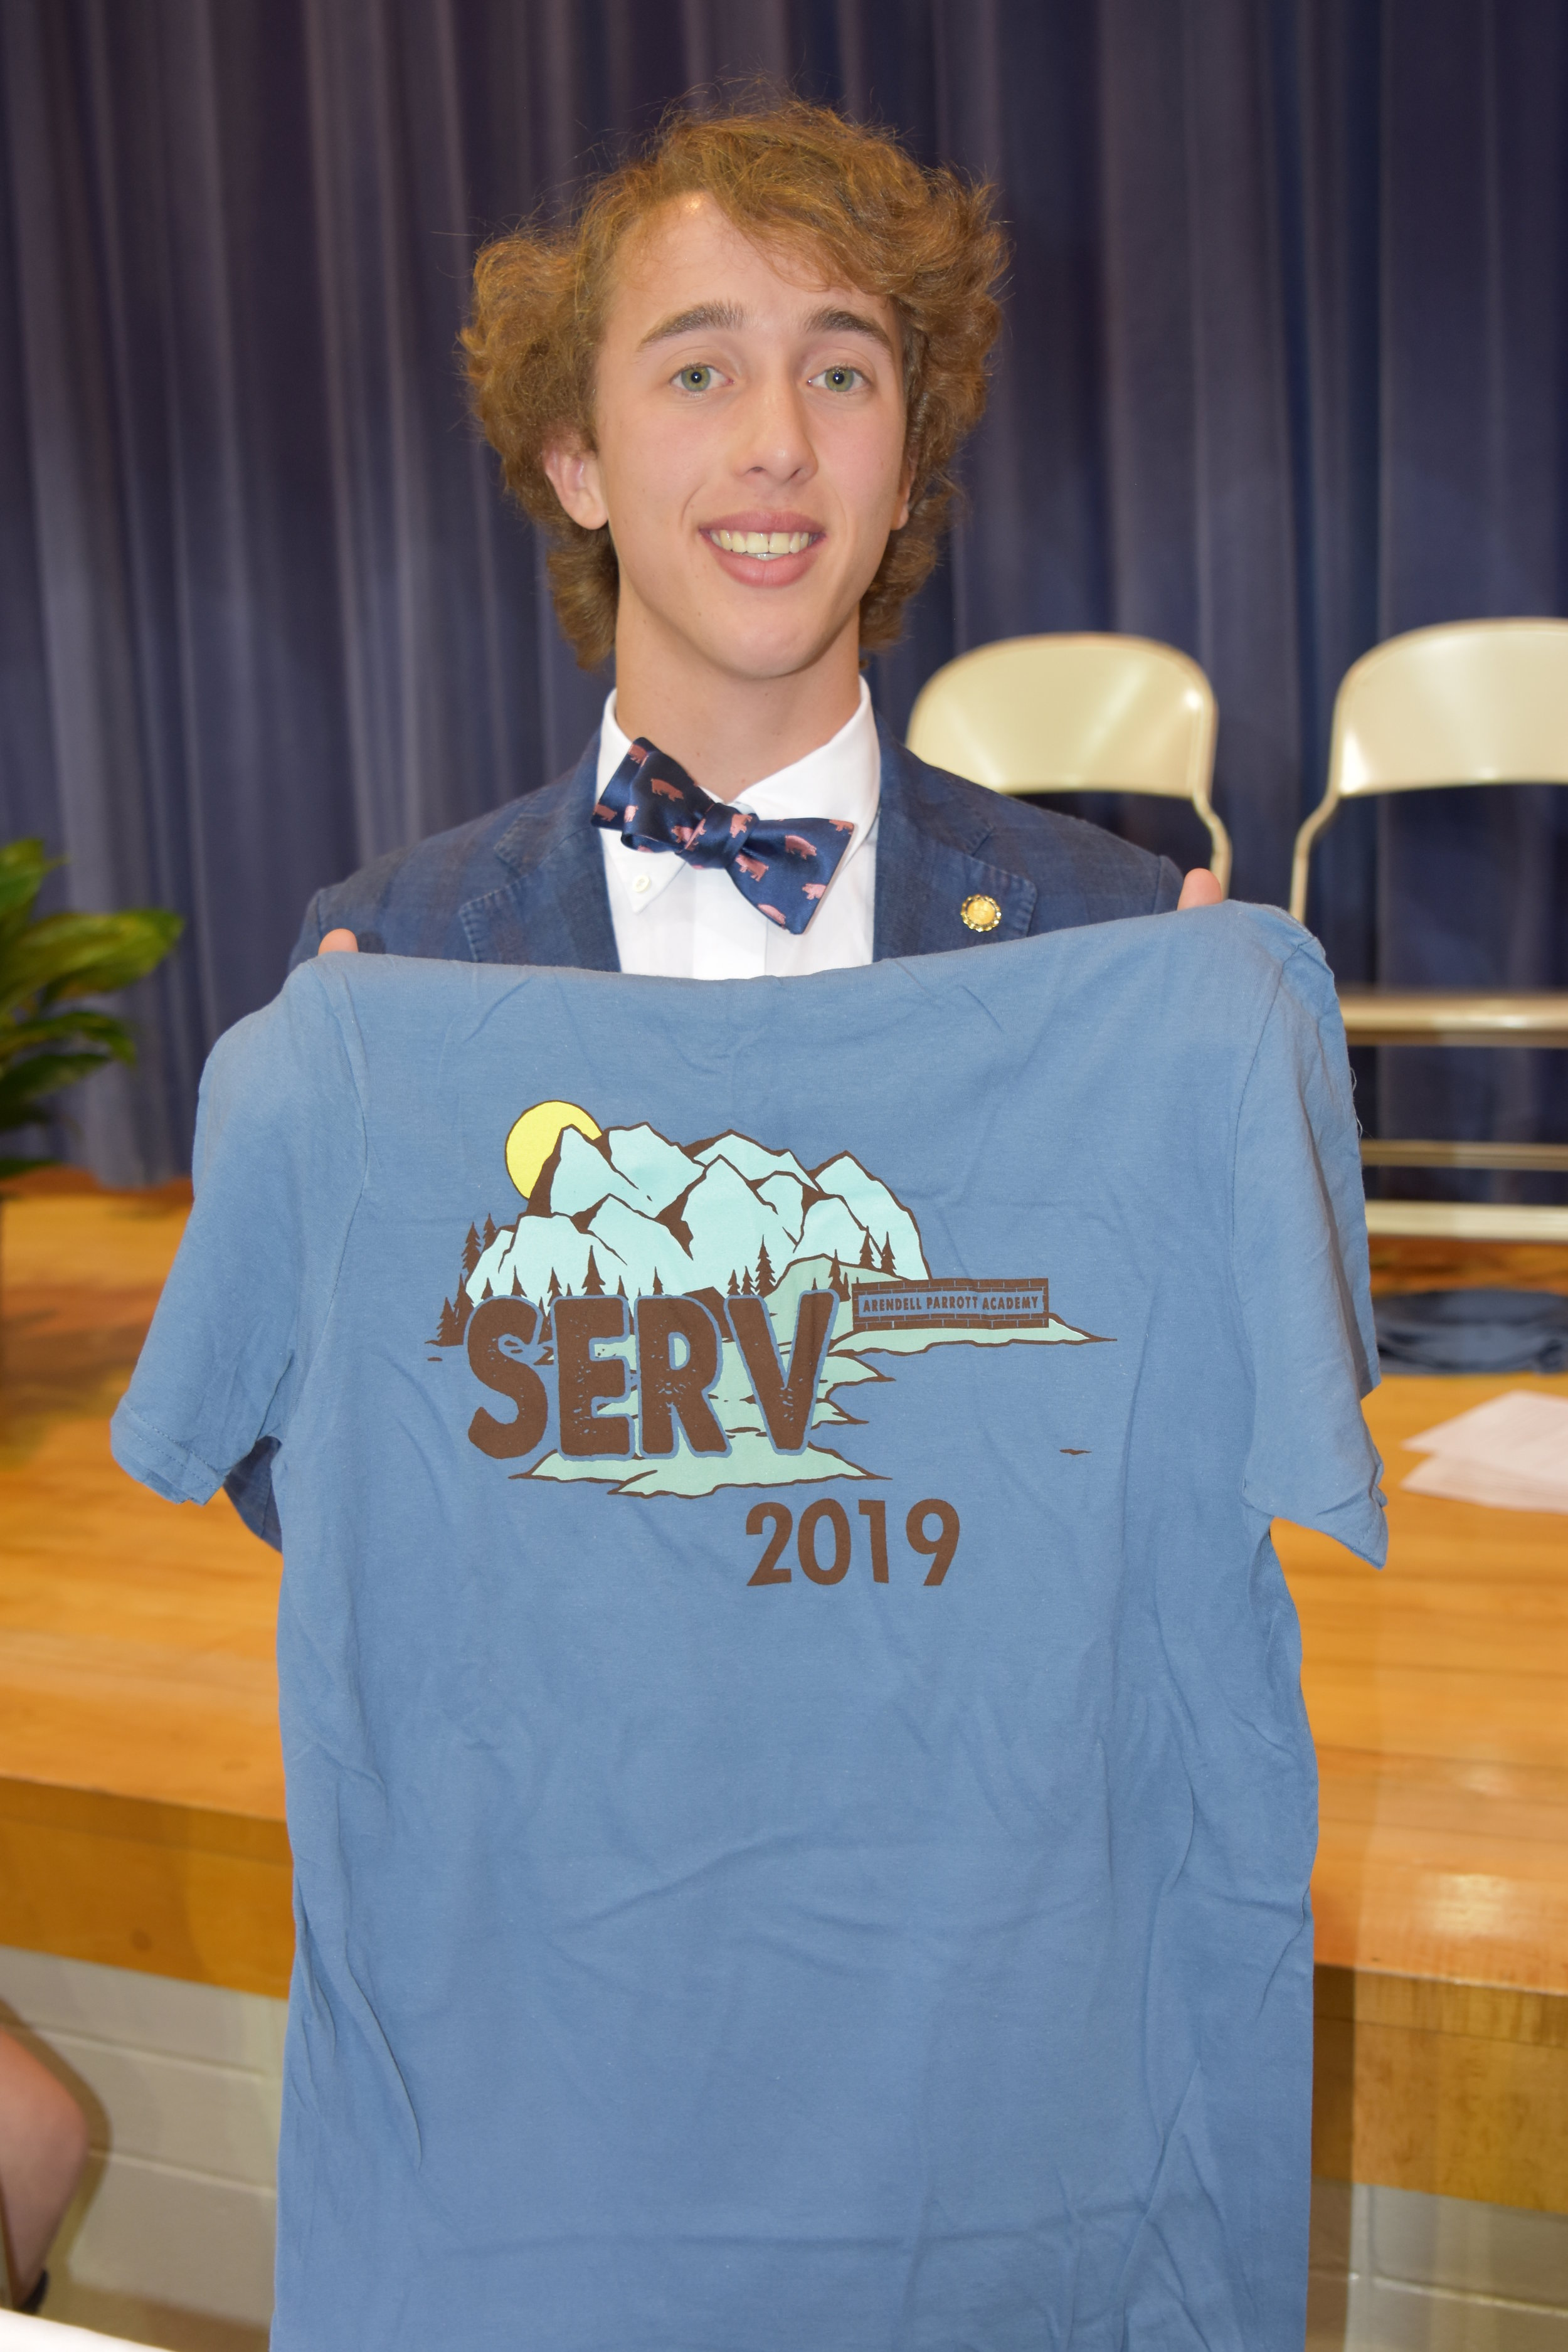 Senior Jeff Bland designed the SERV t-shirt that each inductee received.